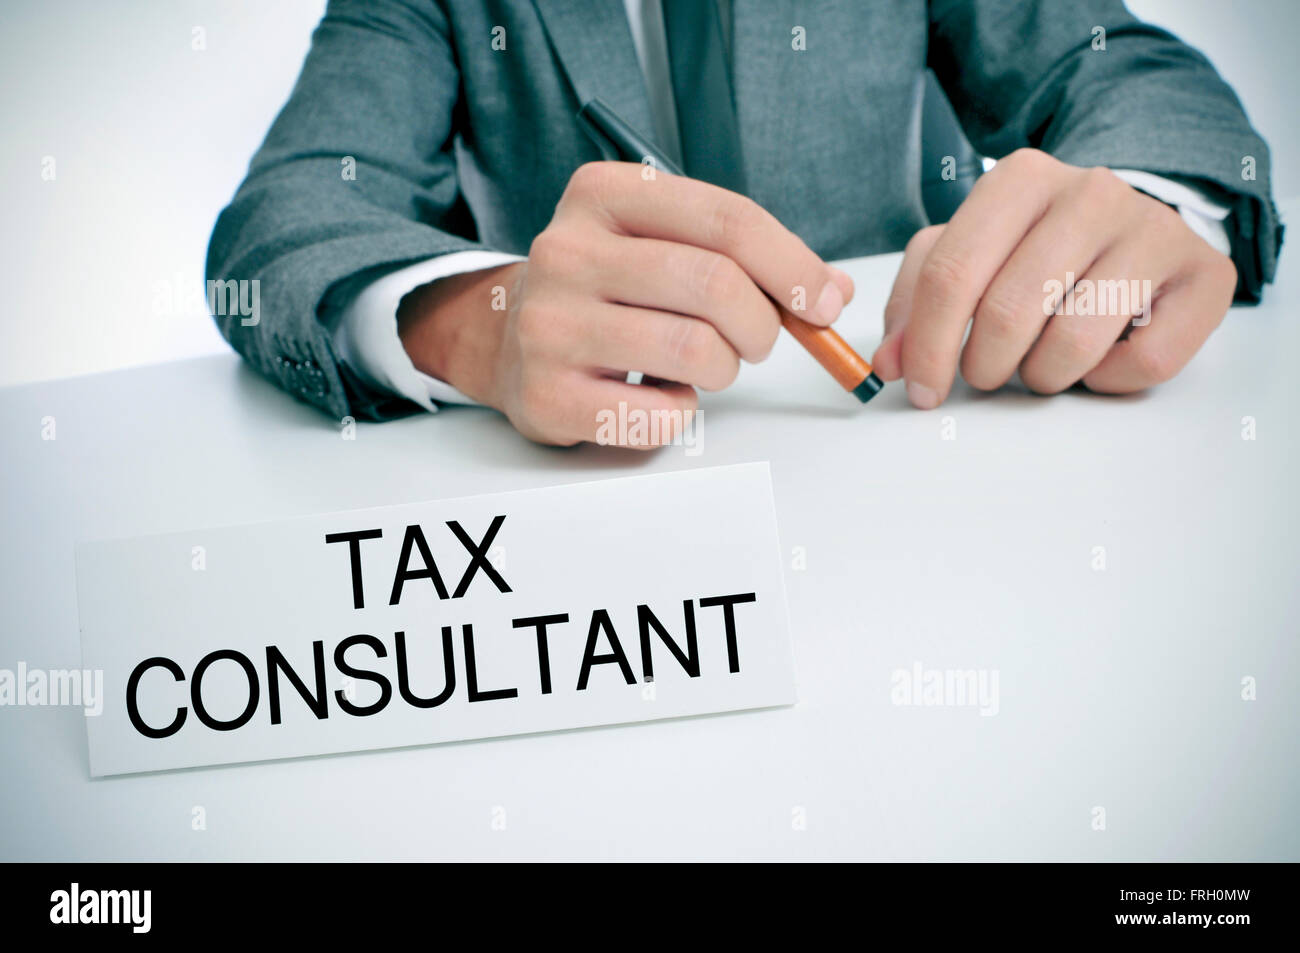 a man wearing a gray suit sitting at his office desk with a signboard in front of him with the text tax consultant - Stock Image